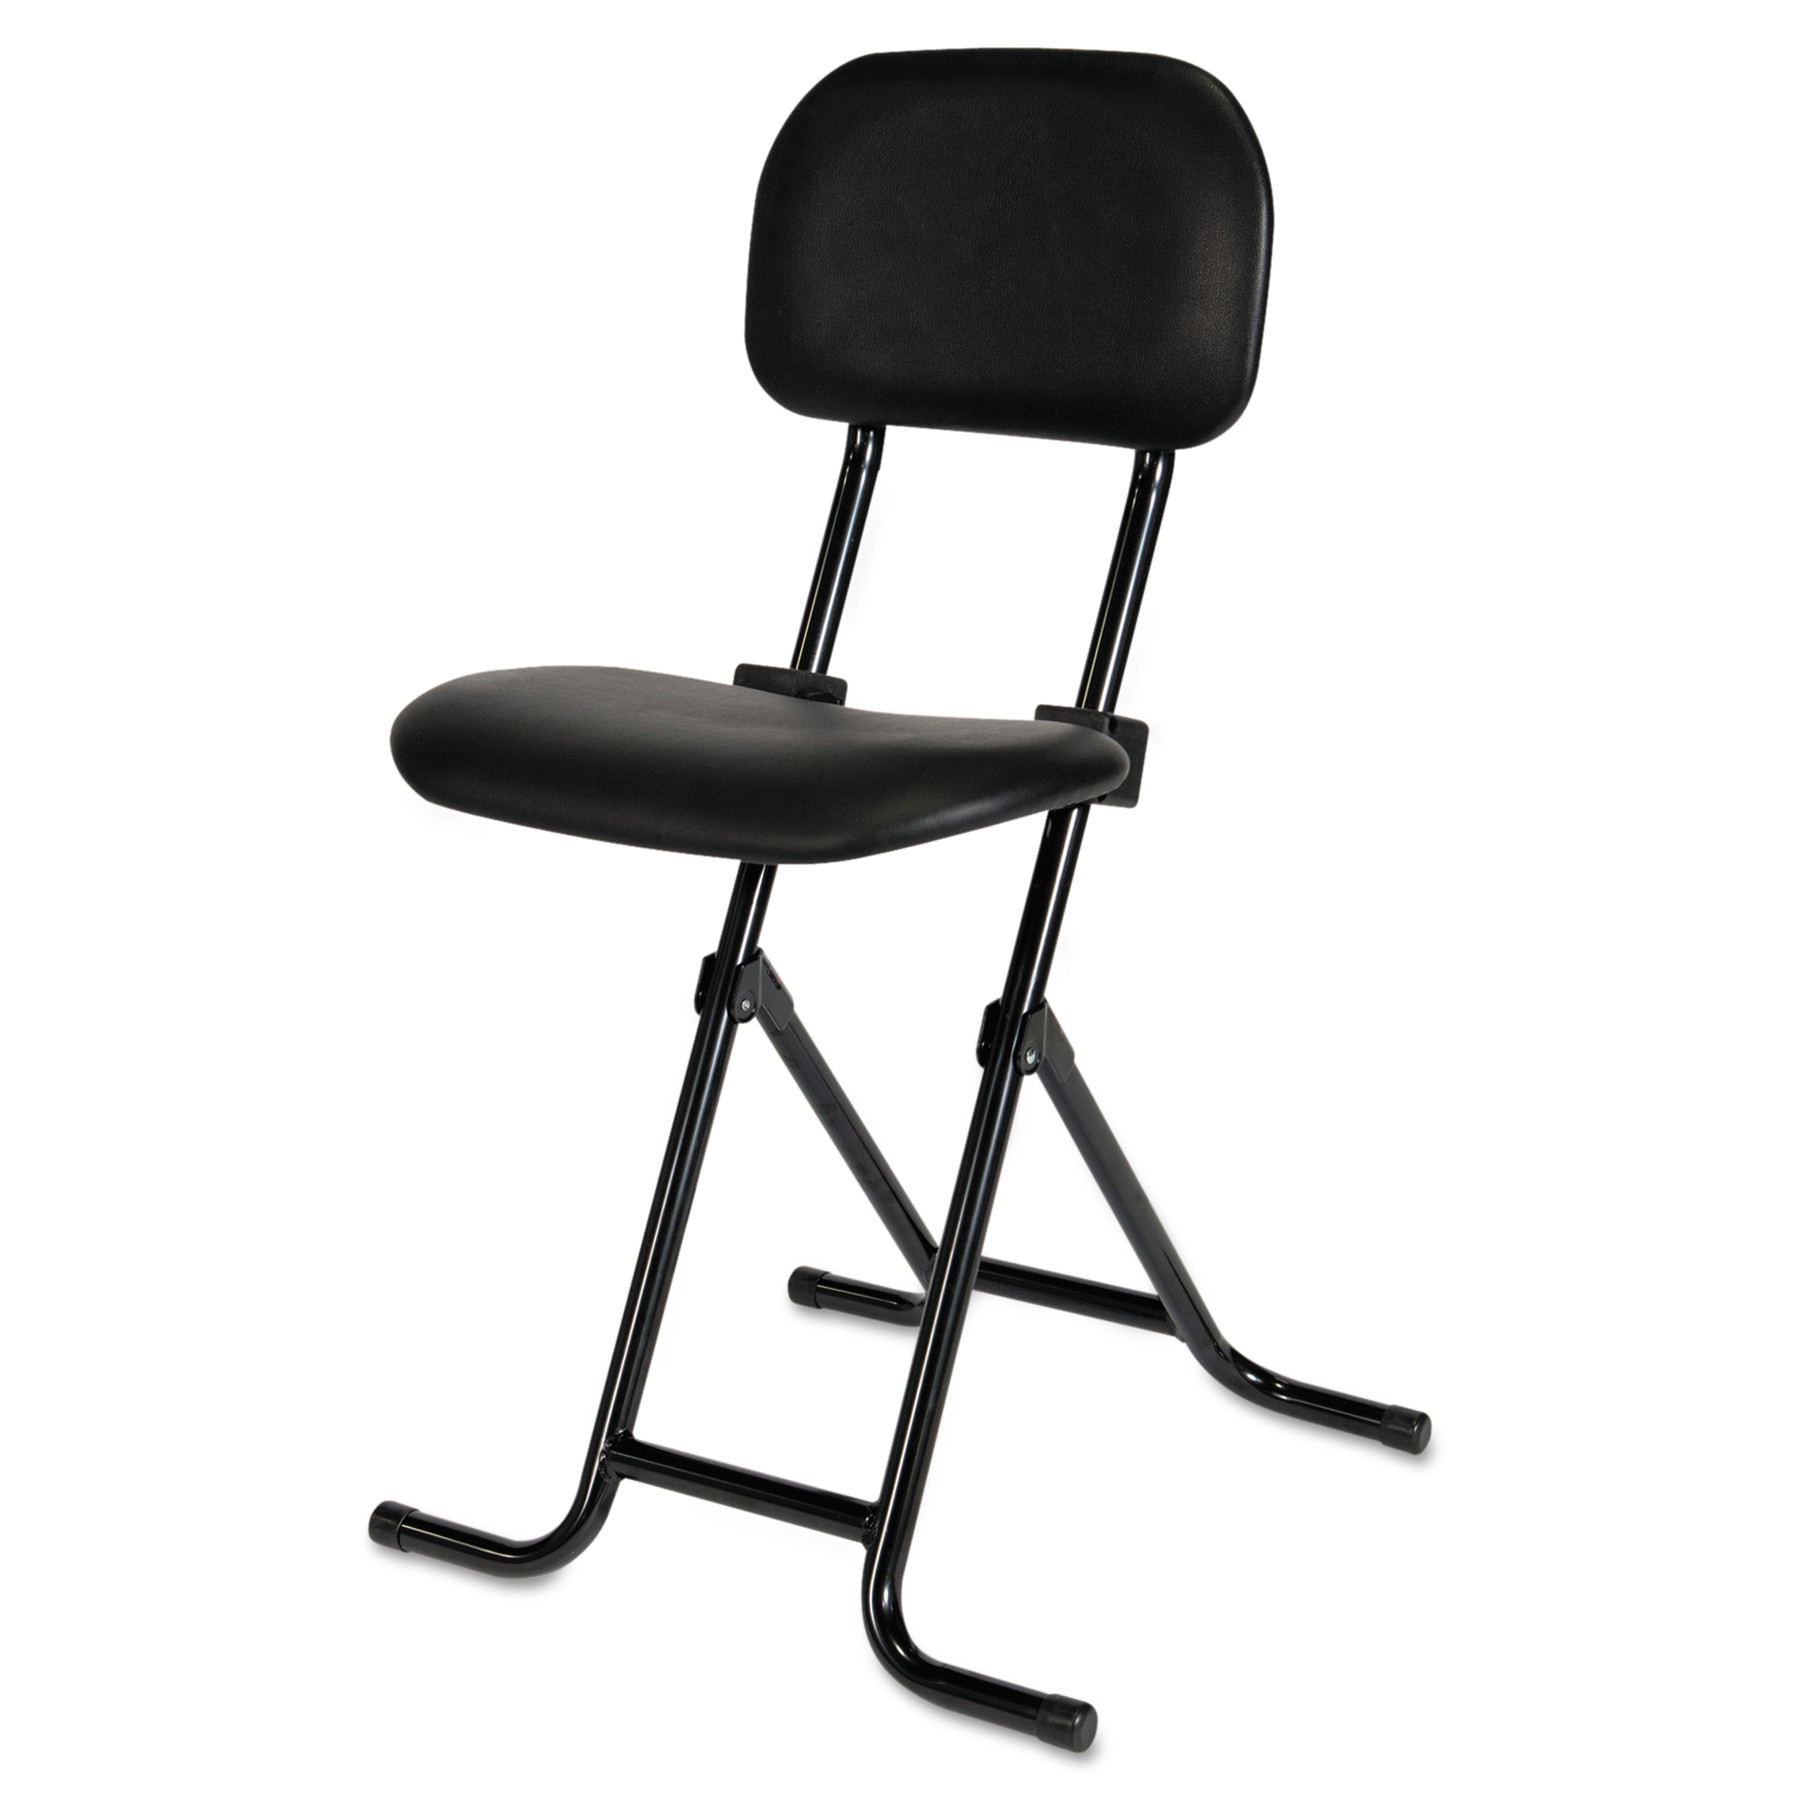 Padded seat can Support 198 pounds Adjustable Folding Piano Stool Black